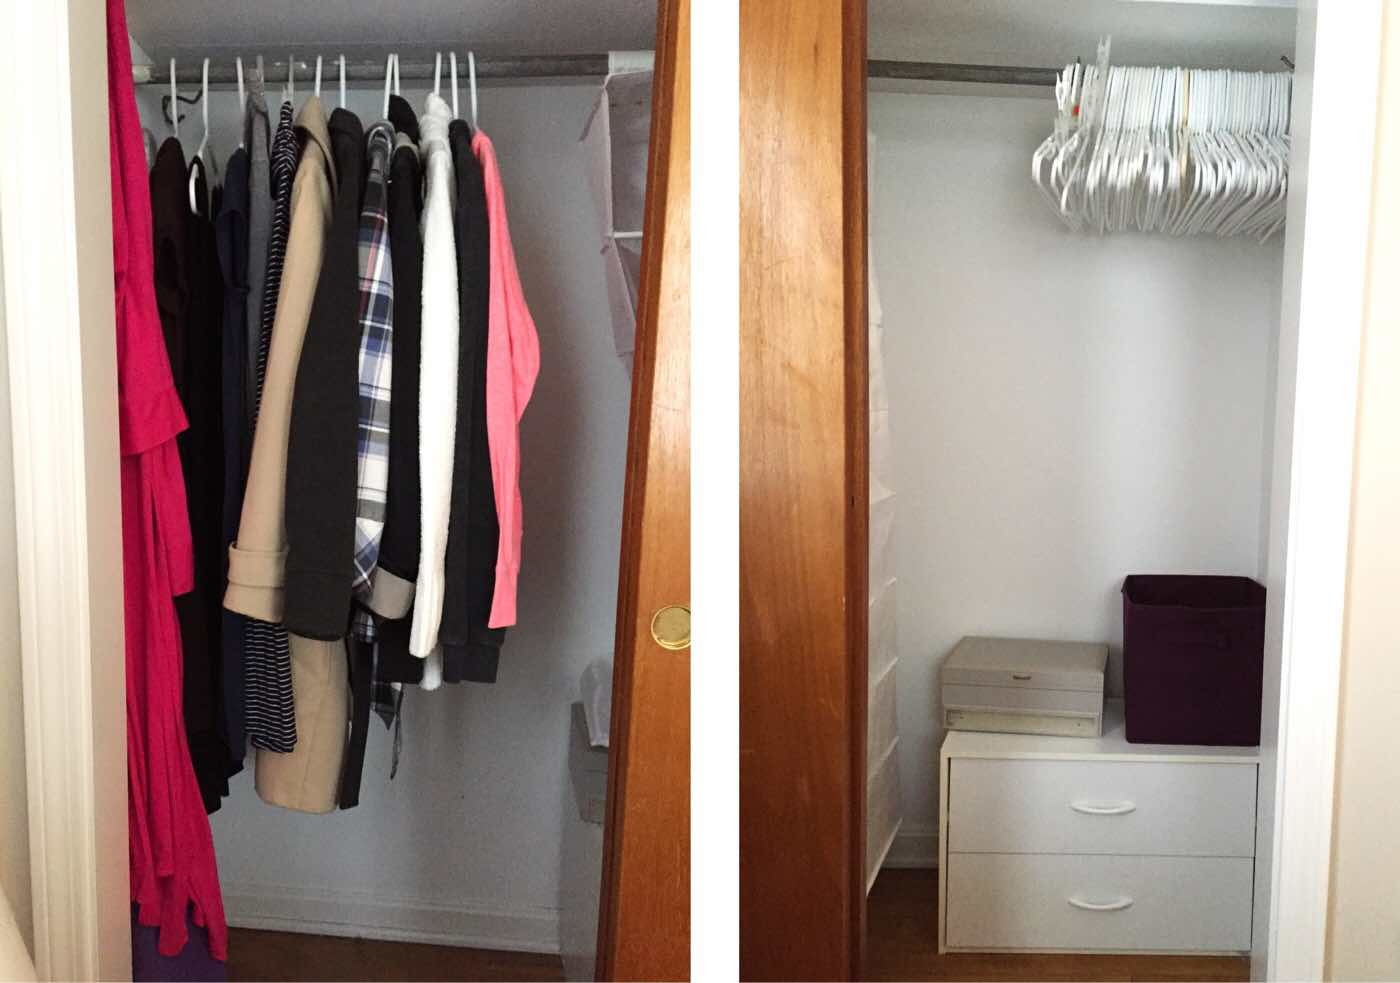 closet after the KonMari method